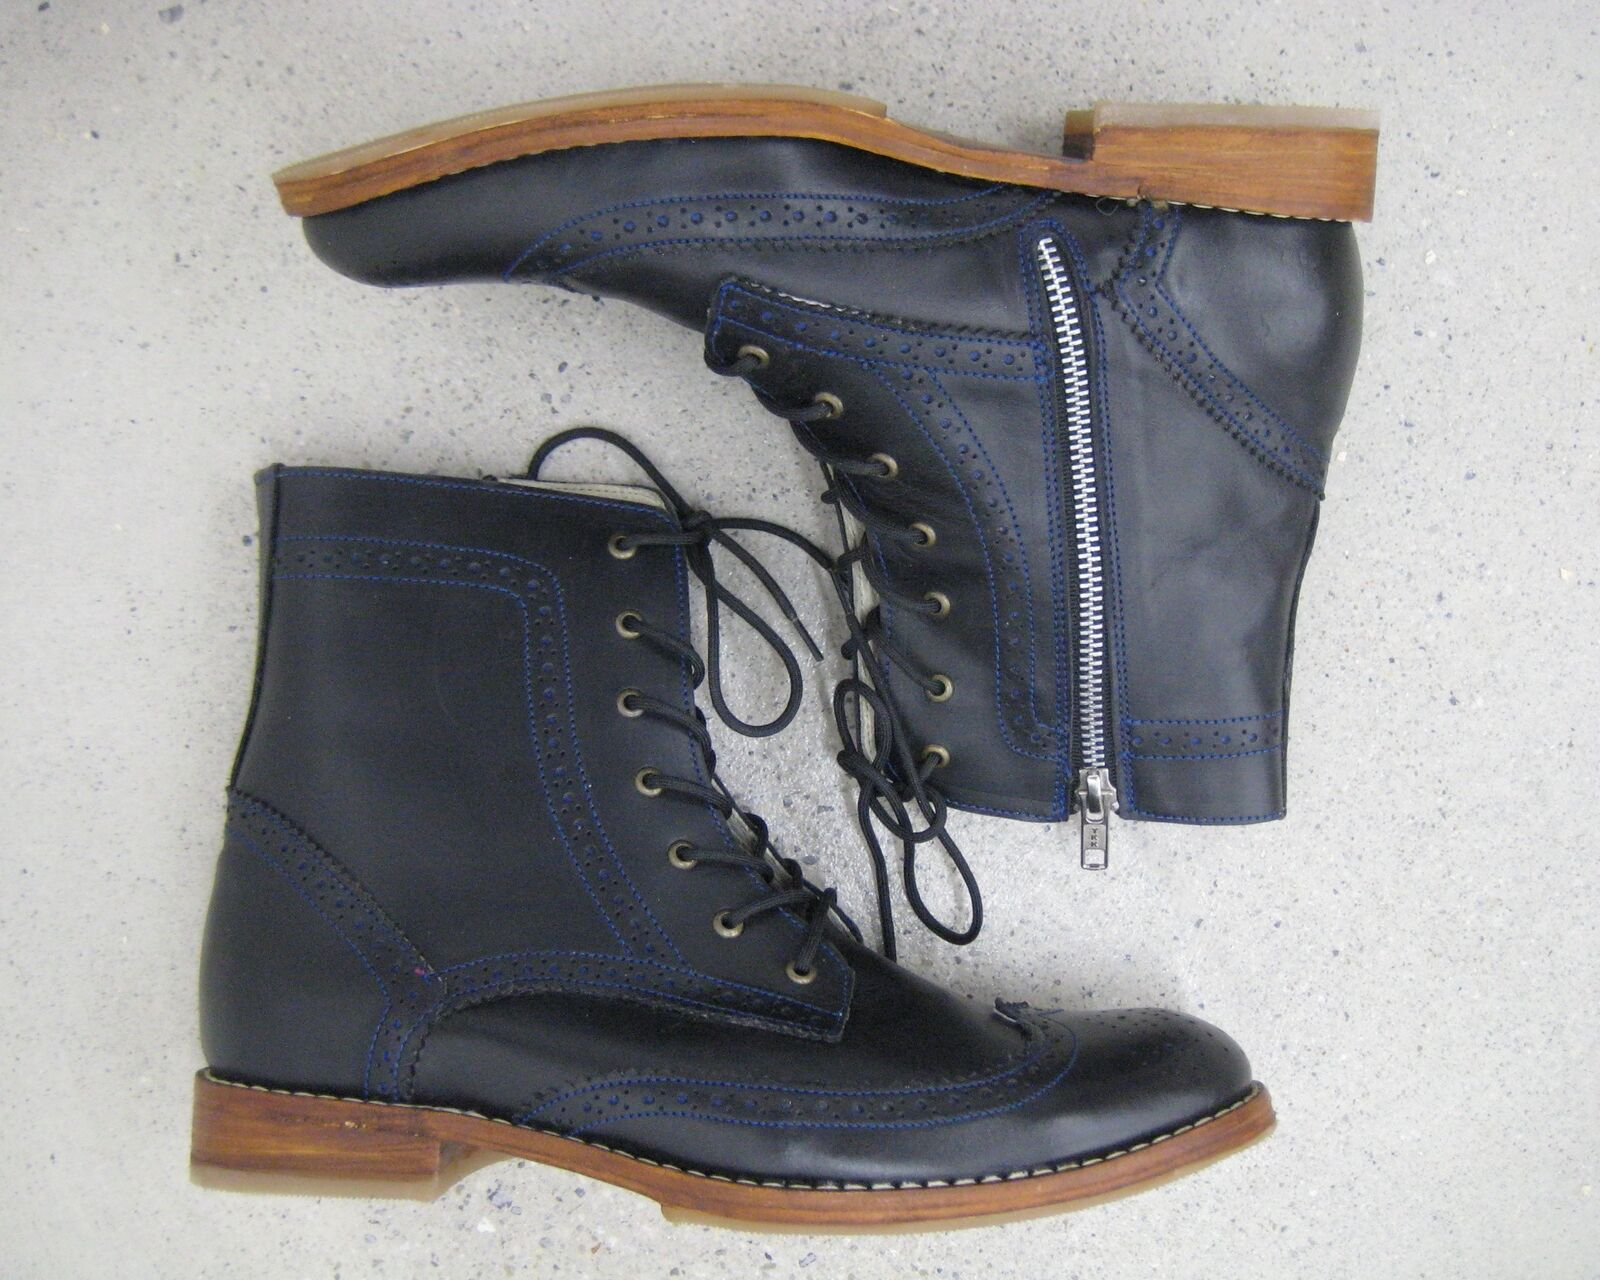 Mens Boots Black Leather Limited Collection Handmade New